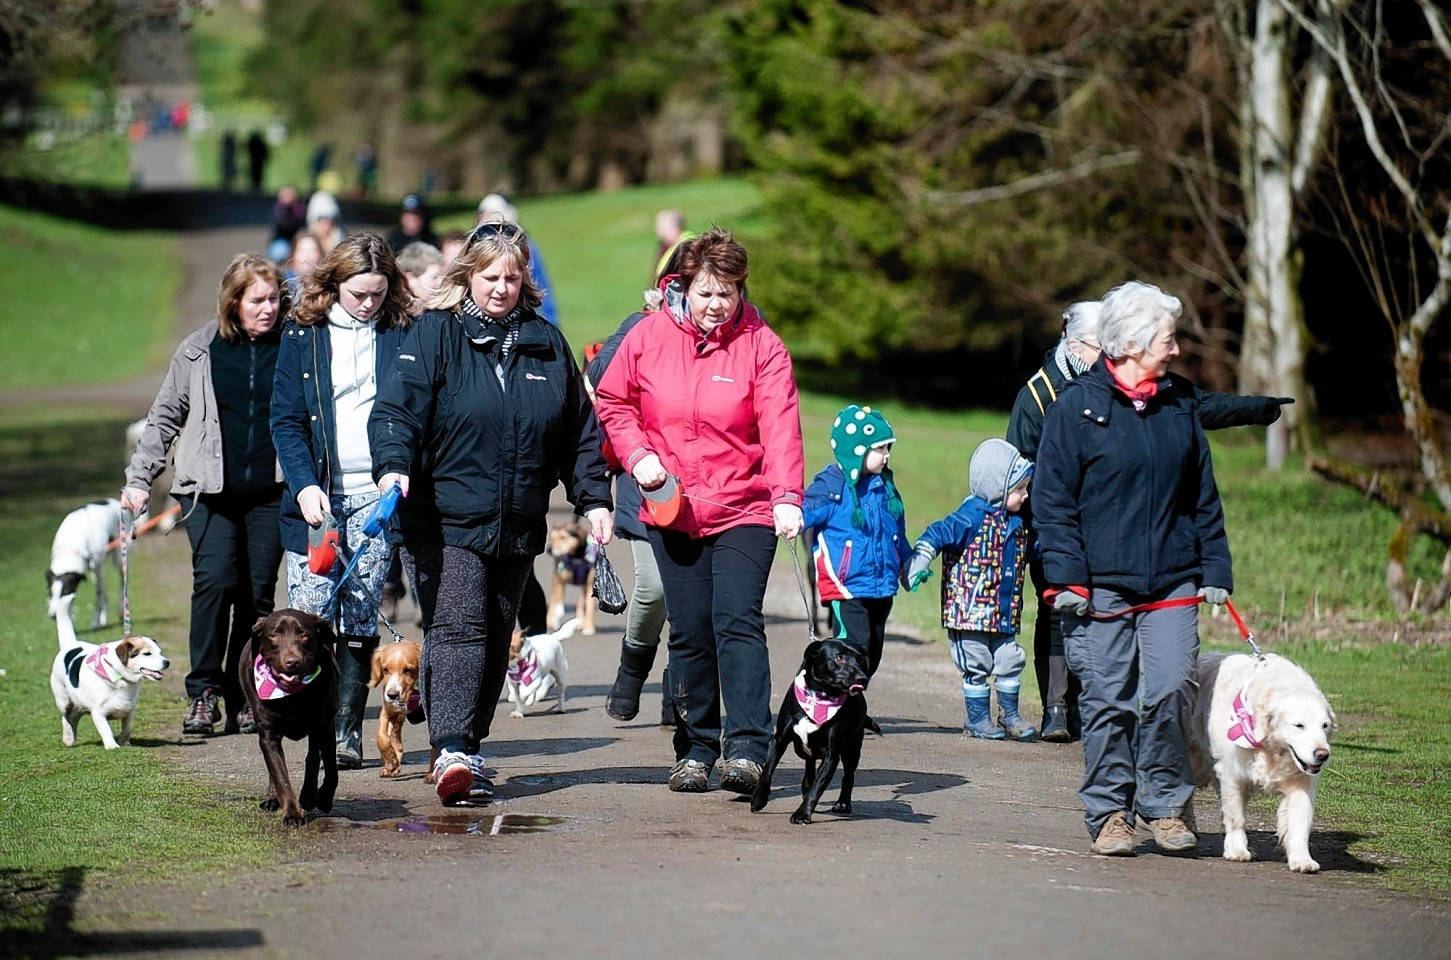 Hearing Dogs for Deaf People's Great British Dog Walk event